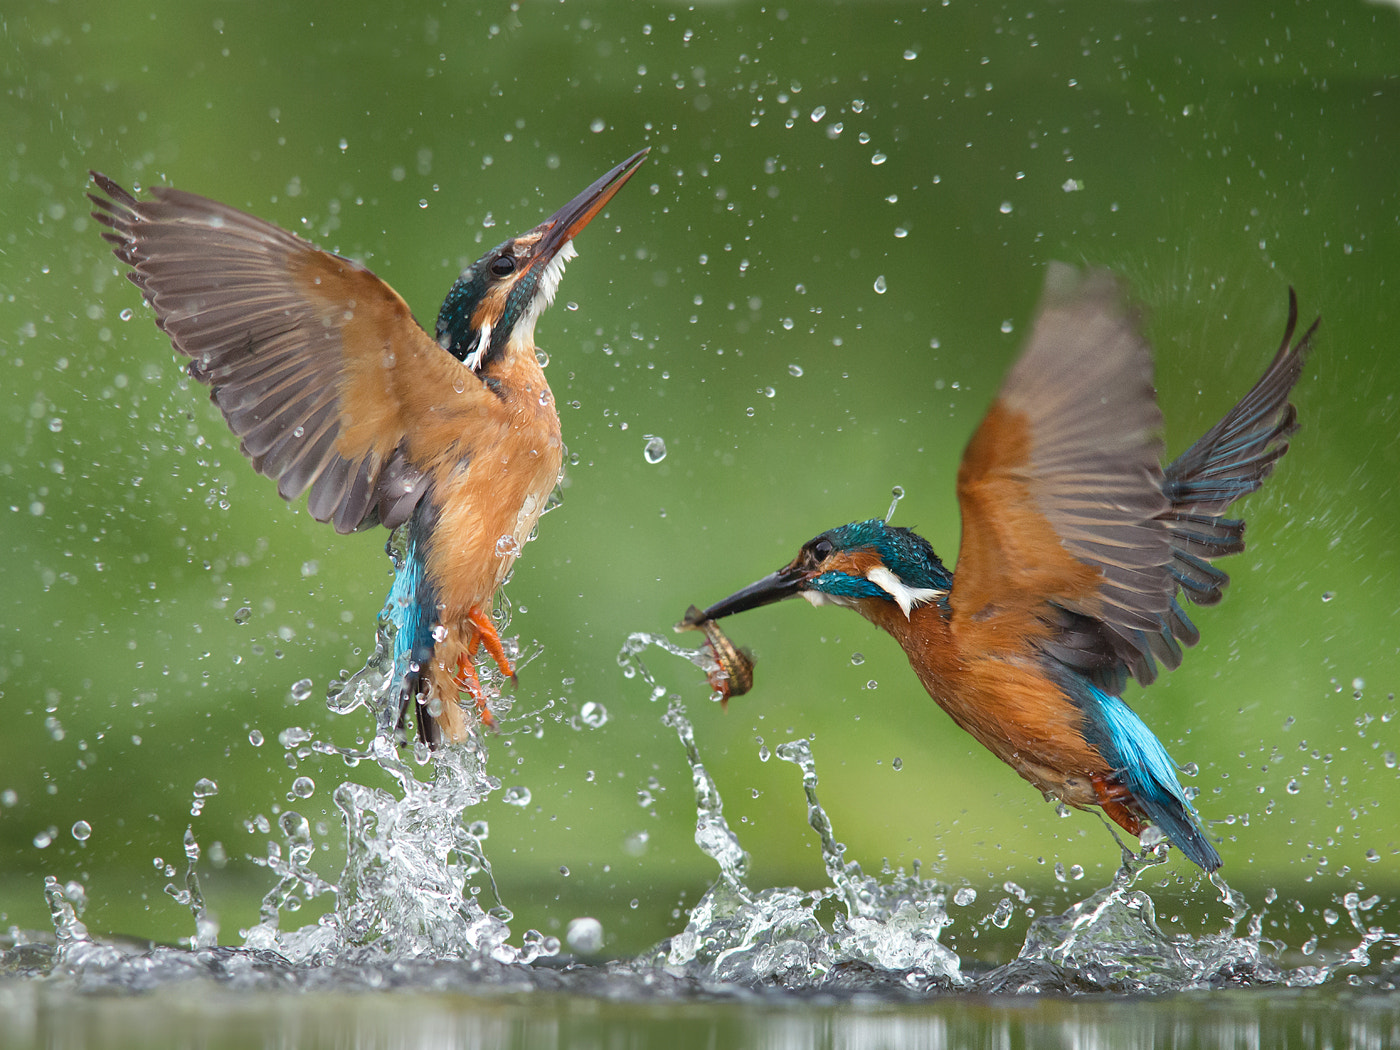 Photograph Mad fishing by Jamie MacArthur on 500px